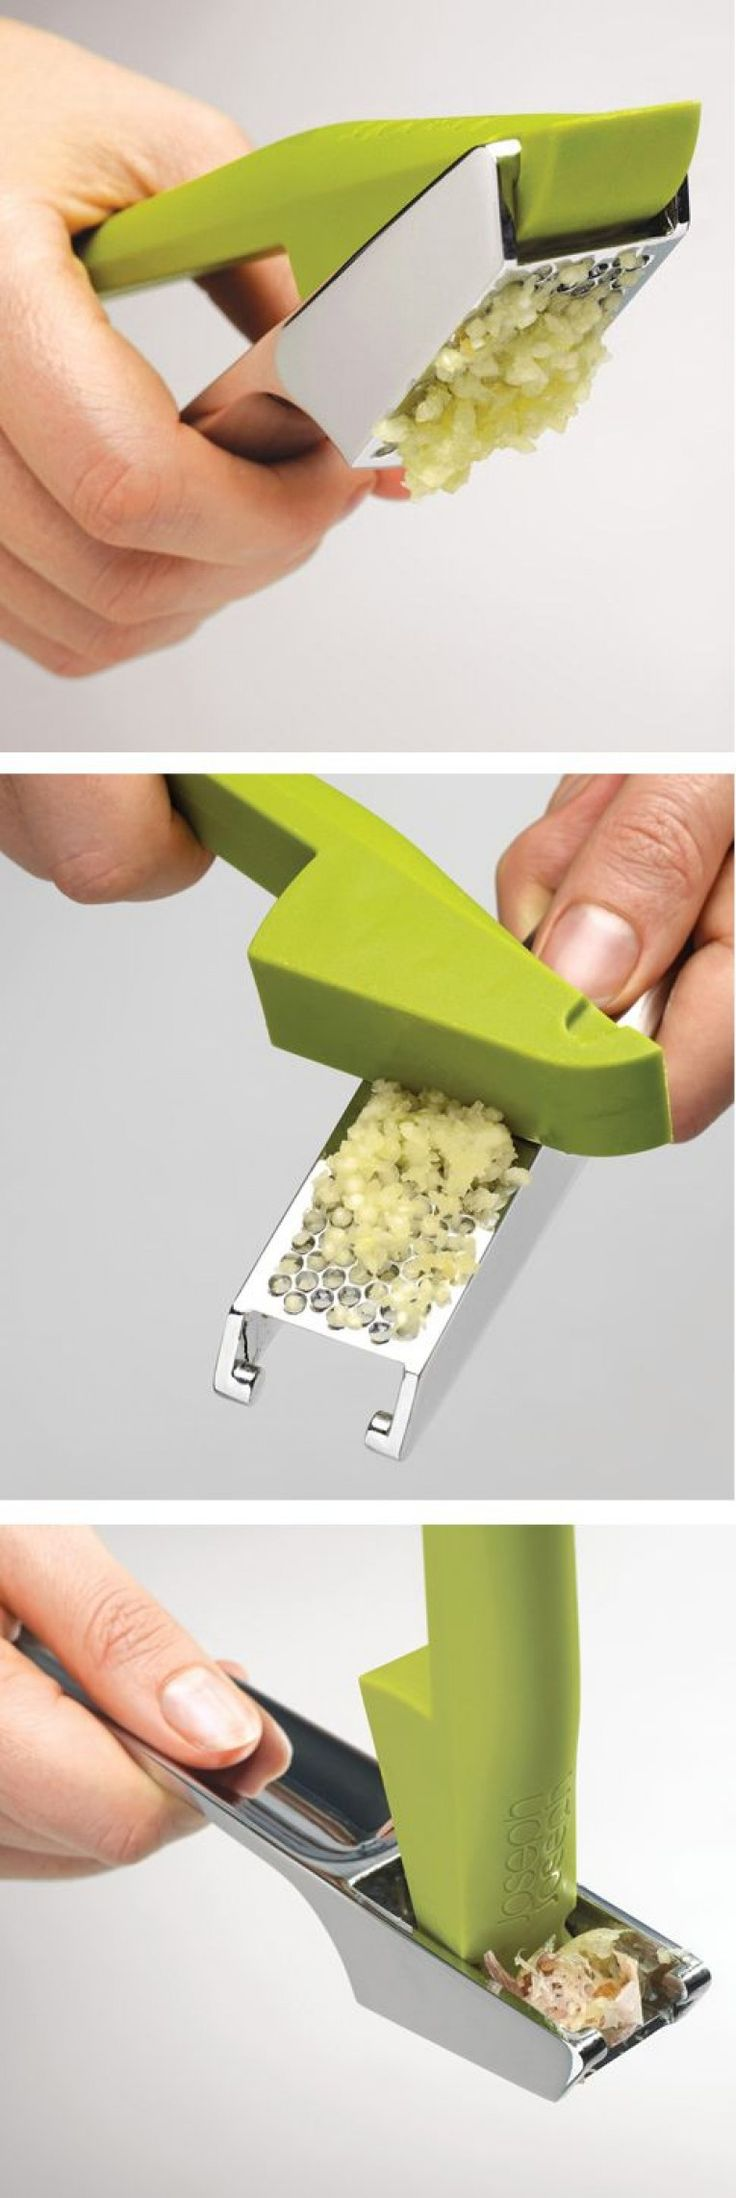 Easy-Press Garlic Press with Integrated Scraping Tool